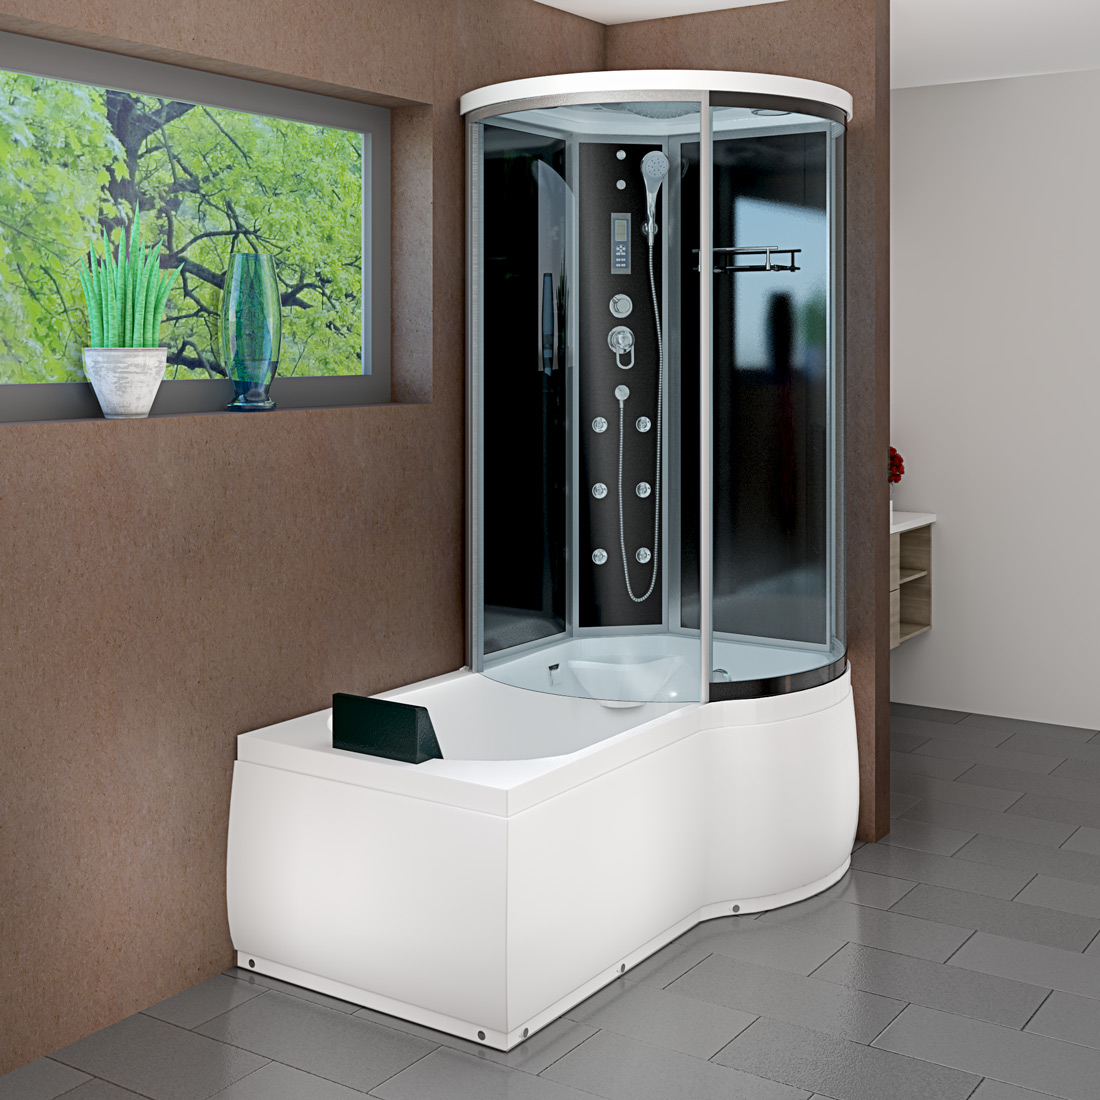 acquavapore dtp8055 a301l wanne duschtempel badewanne dusche duschkabine 170x98 ebay. Black Bedroom Furniture Sets. Home Design Ideas